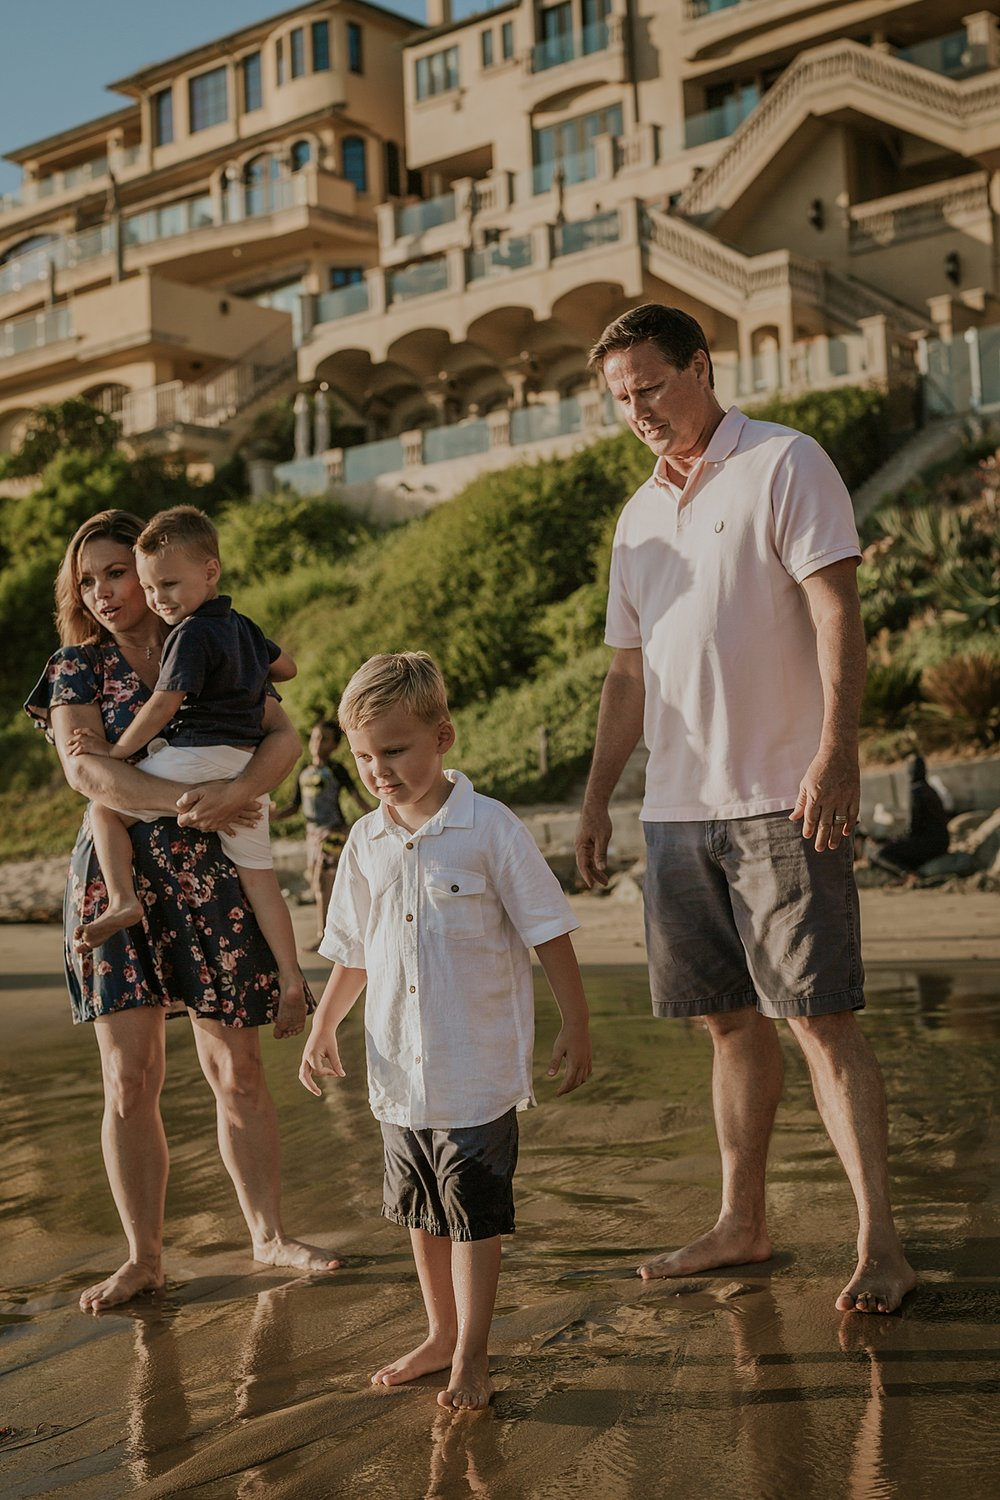 orange county family photographer. family photo of mom, dad and their boys playing in the sand during outdoor family photo session at Corona del Mar State Beach with Krystil McDowall Photography